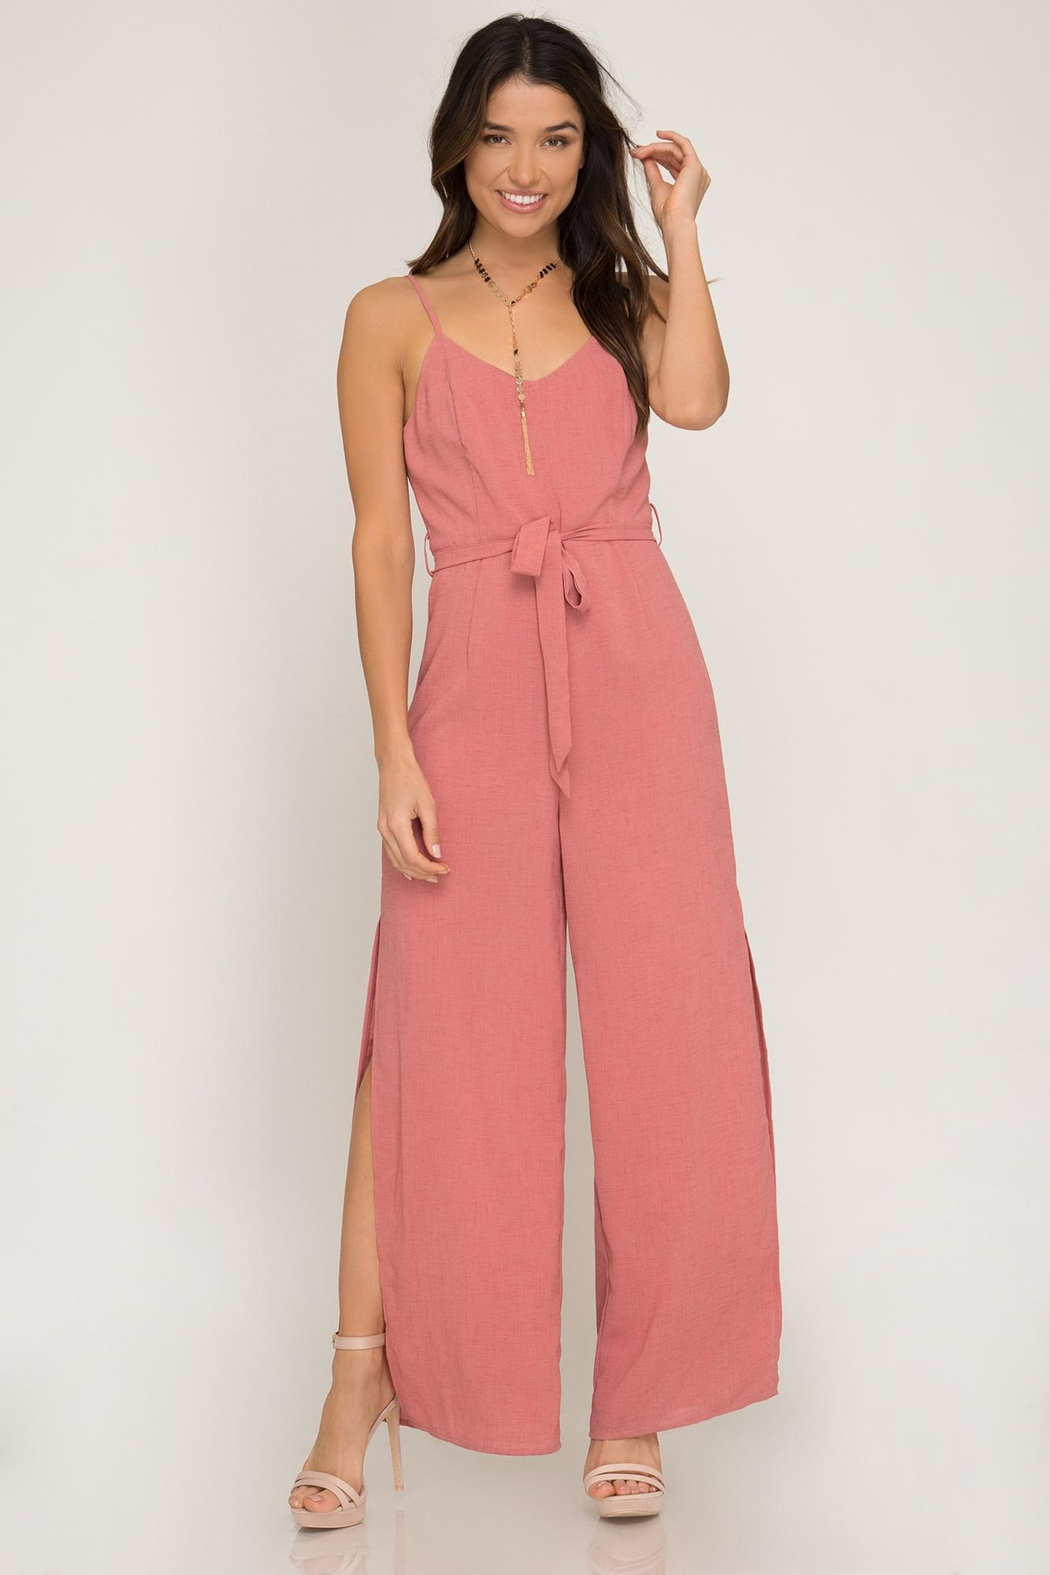 She + Sky Mauve Jumpsuit - Main Image